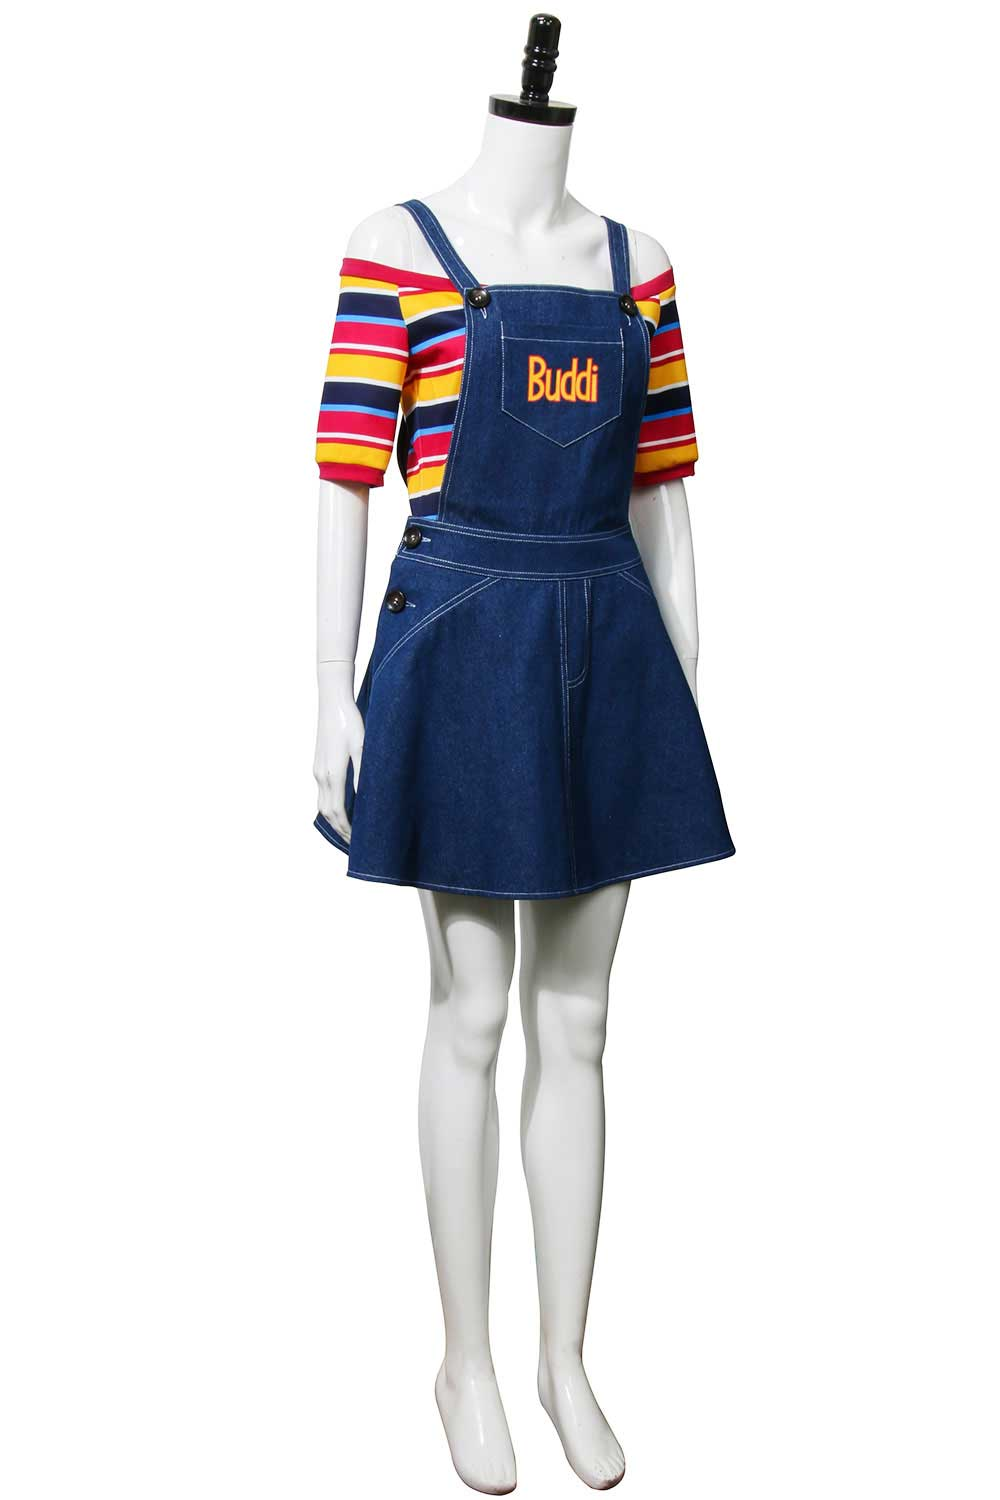 Child's Play Glenn Adult chucky girl costume For Female Cosplay